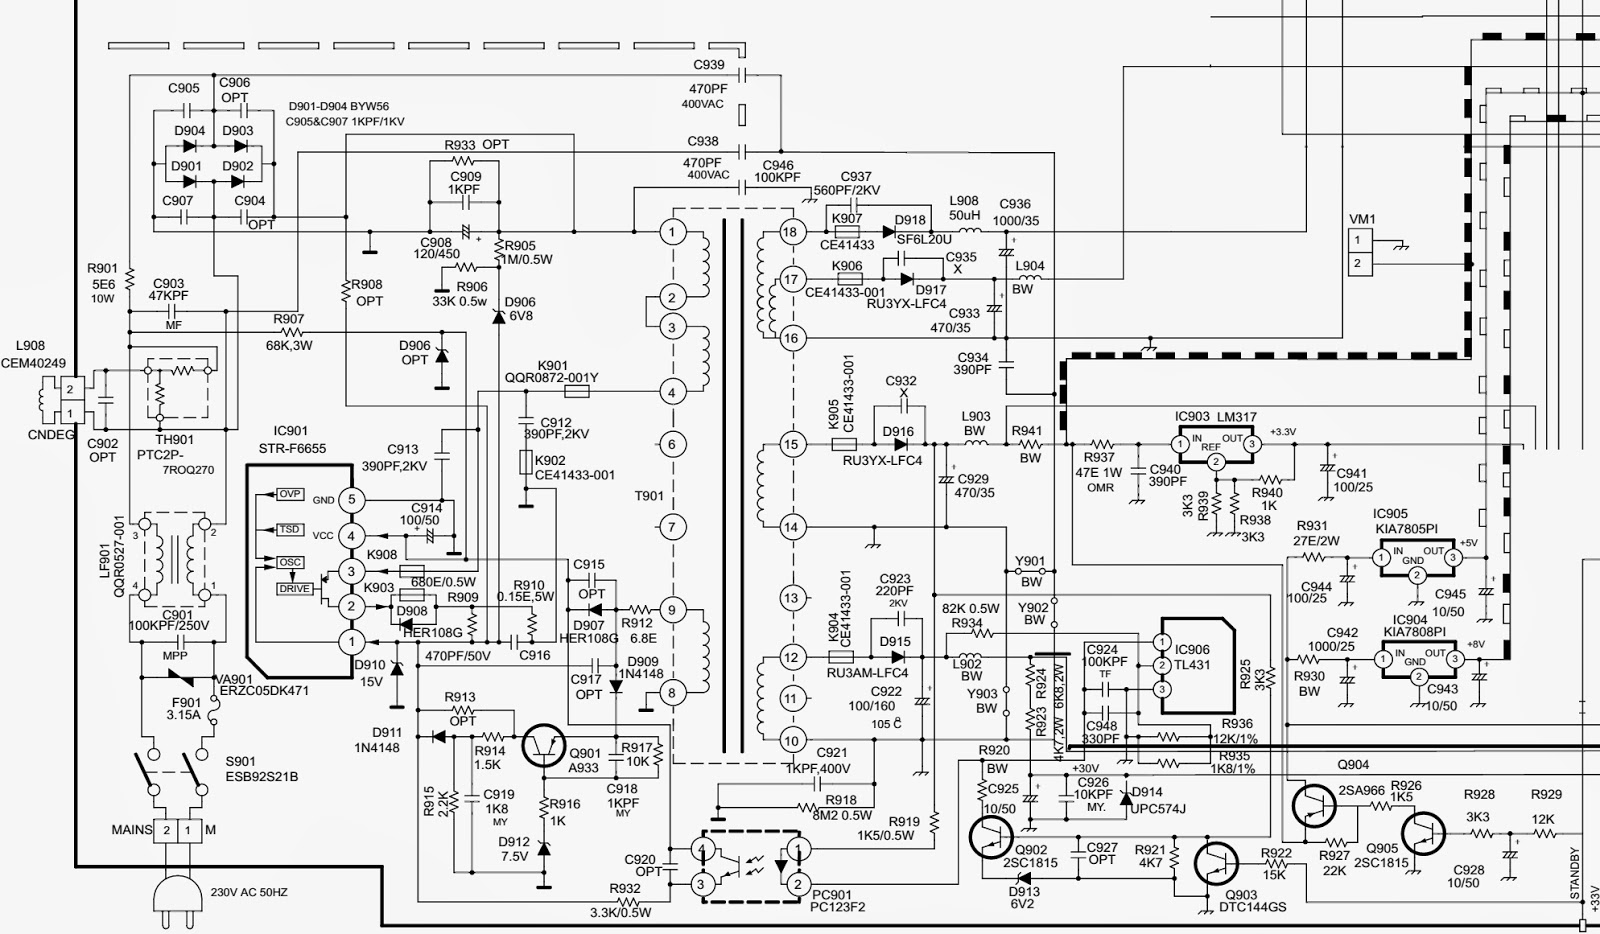 Samsung Tv Schematic Diagrams 29 Wiring Diagram Images Power Supply Smps Circuit Using Buz91 Schematc Str F6655 Untitled Onida Oxygen